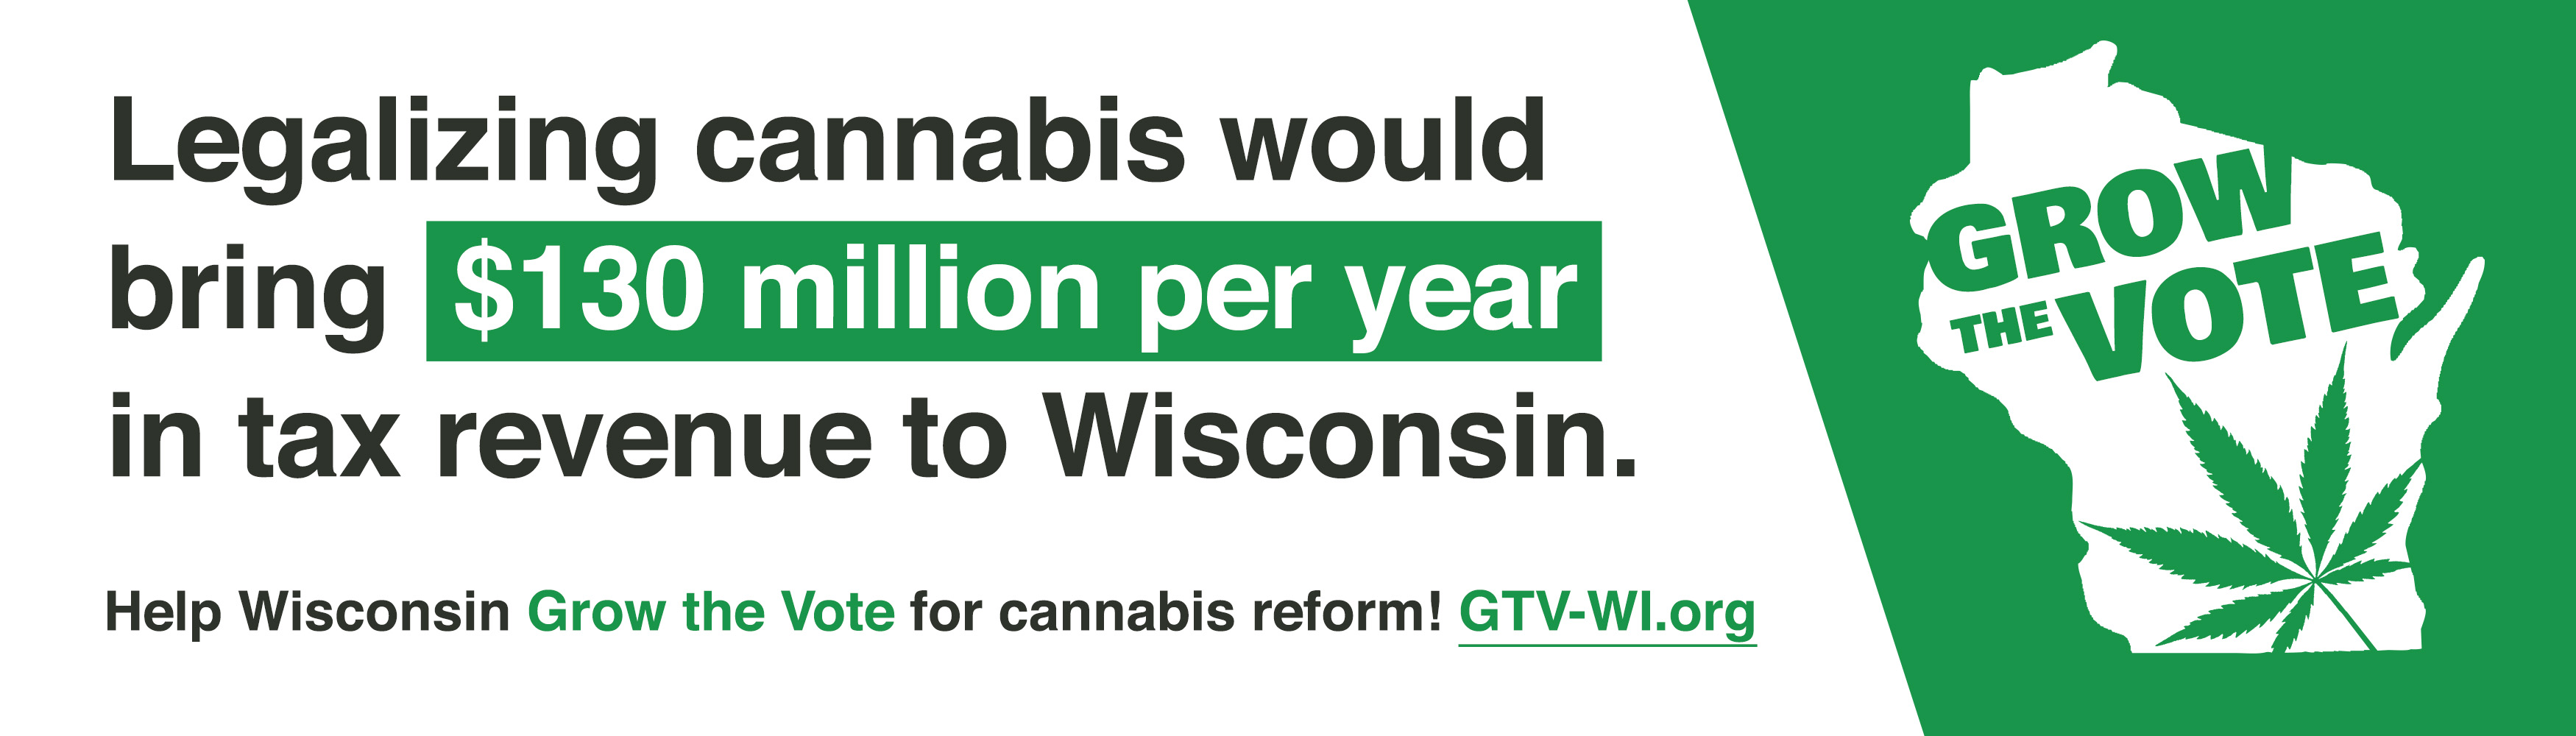 Legalizing cannabis would bring $130 million per year in tax revenue to Wisconsin